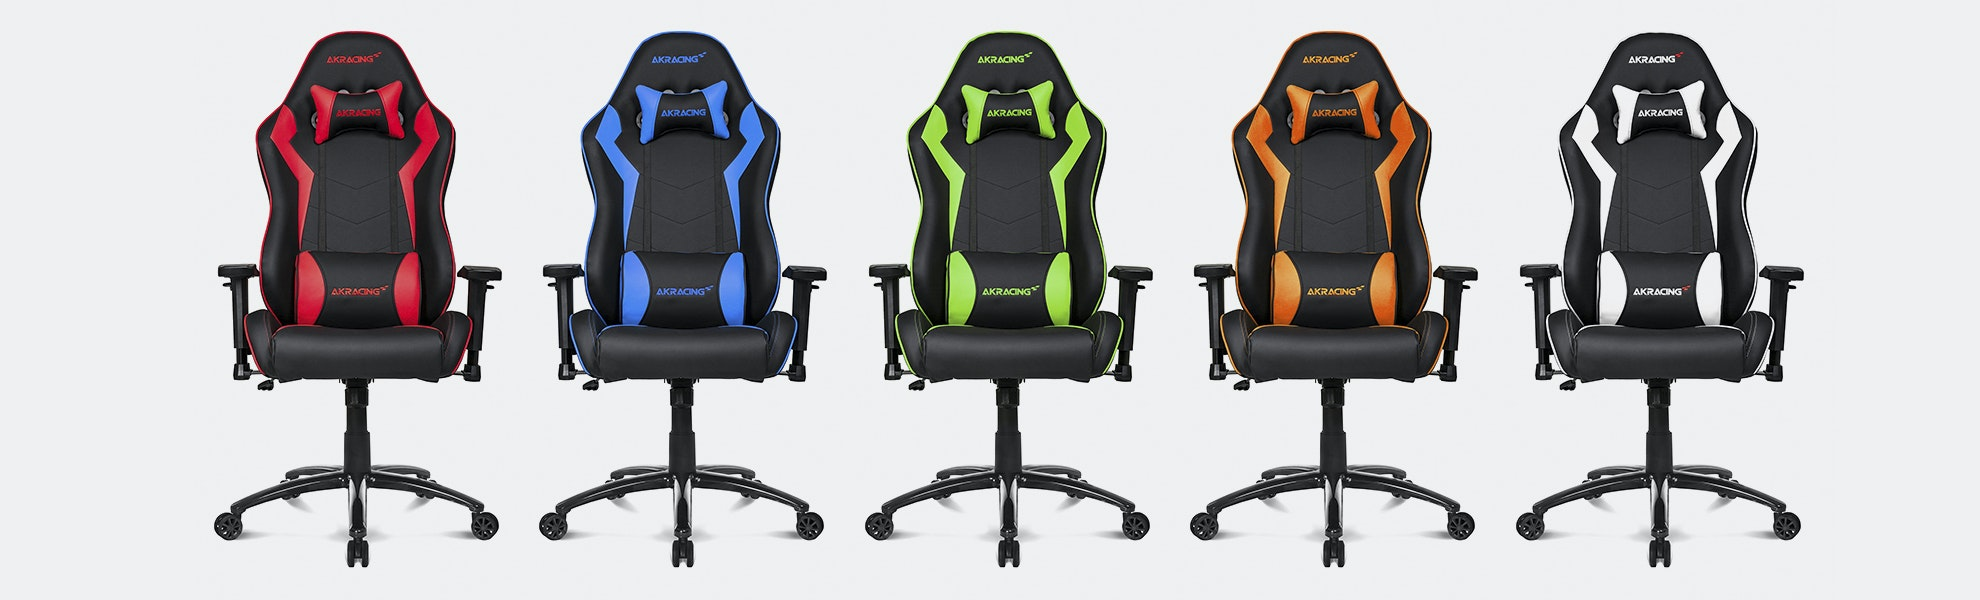 Image Result For Gaming Office Chaira